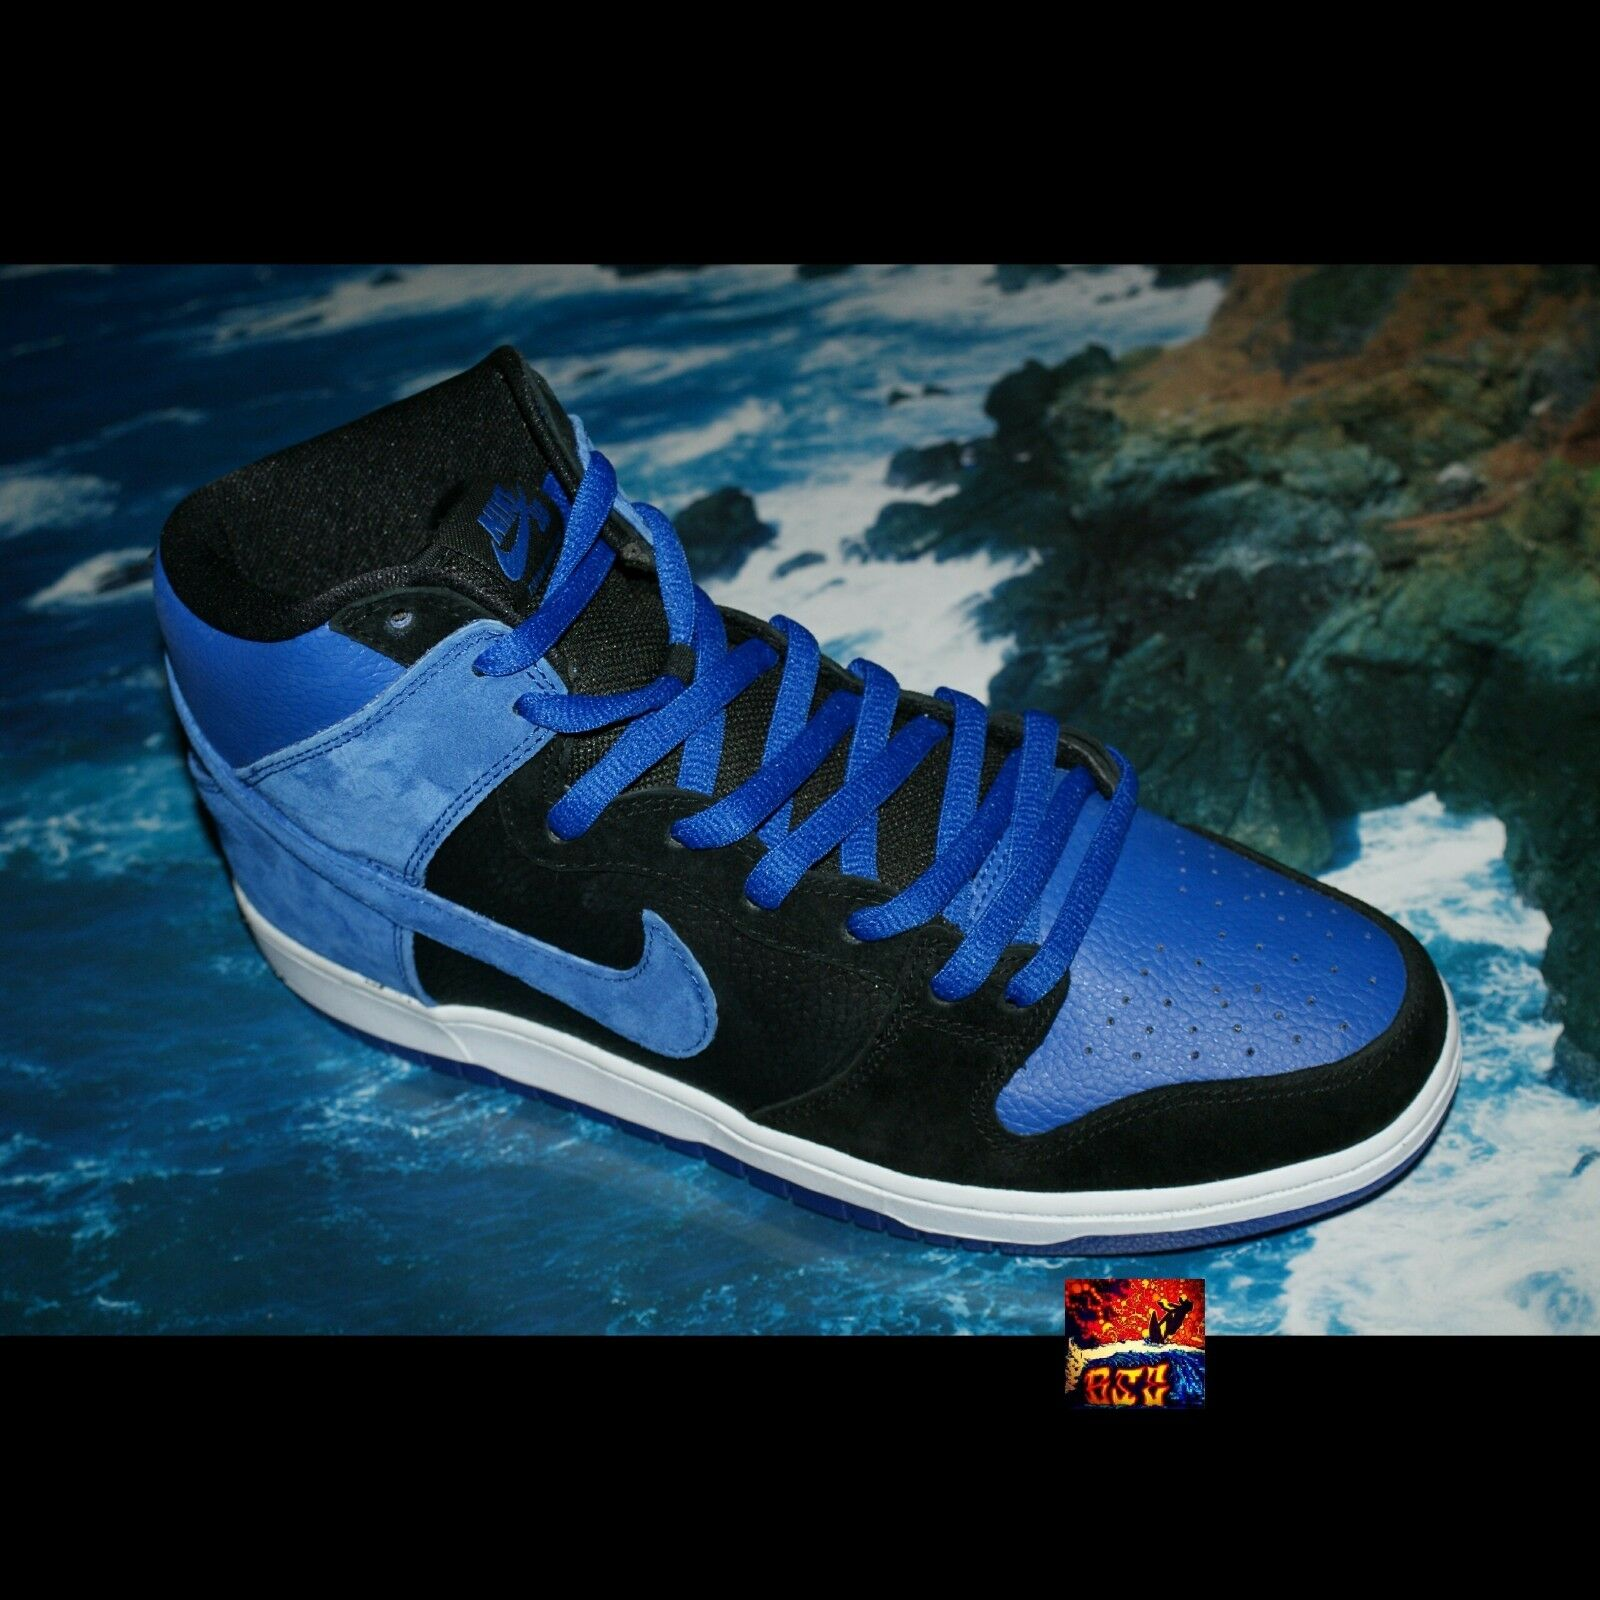 Nike Royal Dunk High Pro SB Royal Nike SZ 12 juego Azul Brand New Jordan 1 Negro DS One I especial de tiempo limitado 6c81da